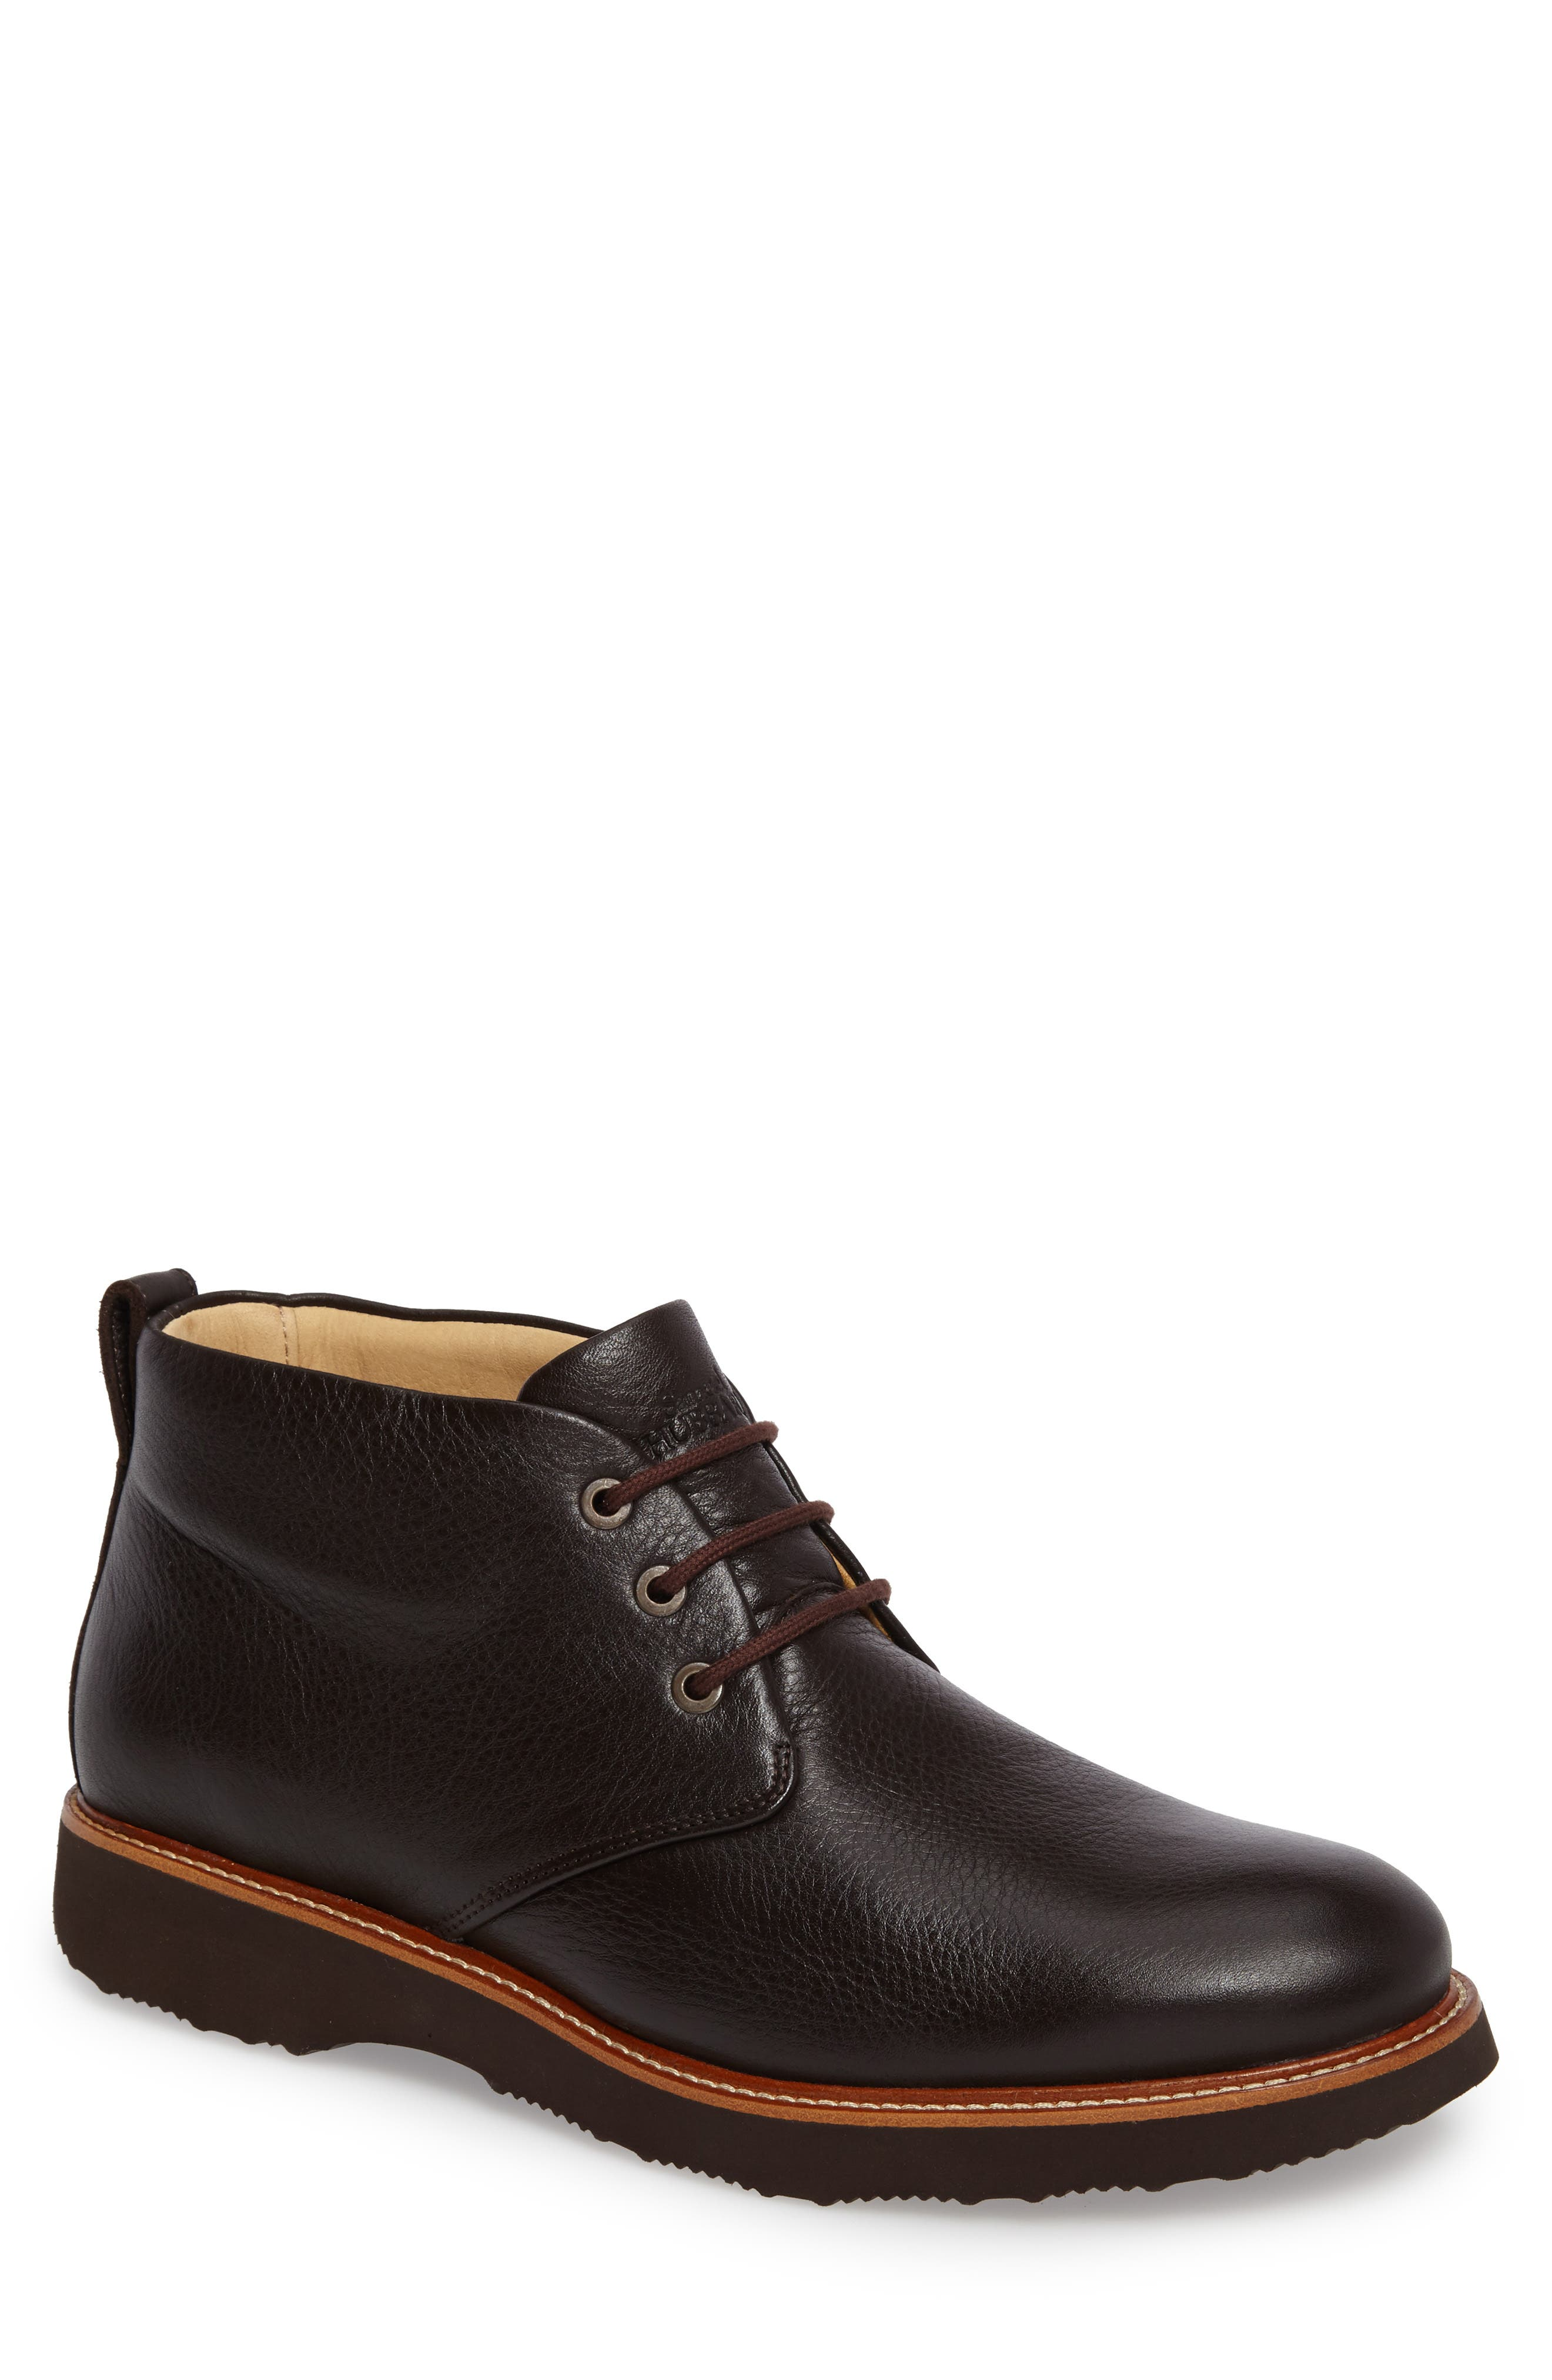 Re-Boot Chukka Boot,                         Main,                         color, ESPRESSO LEATHER